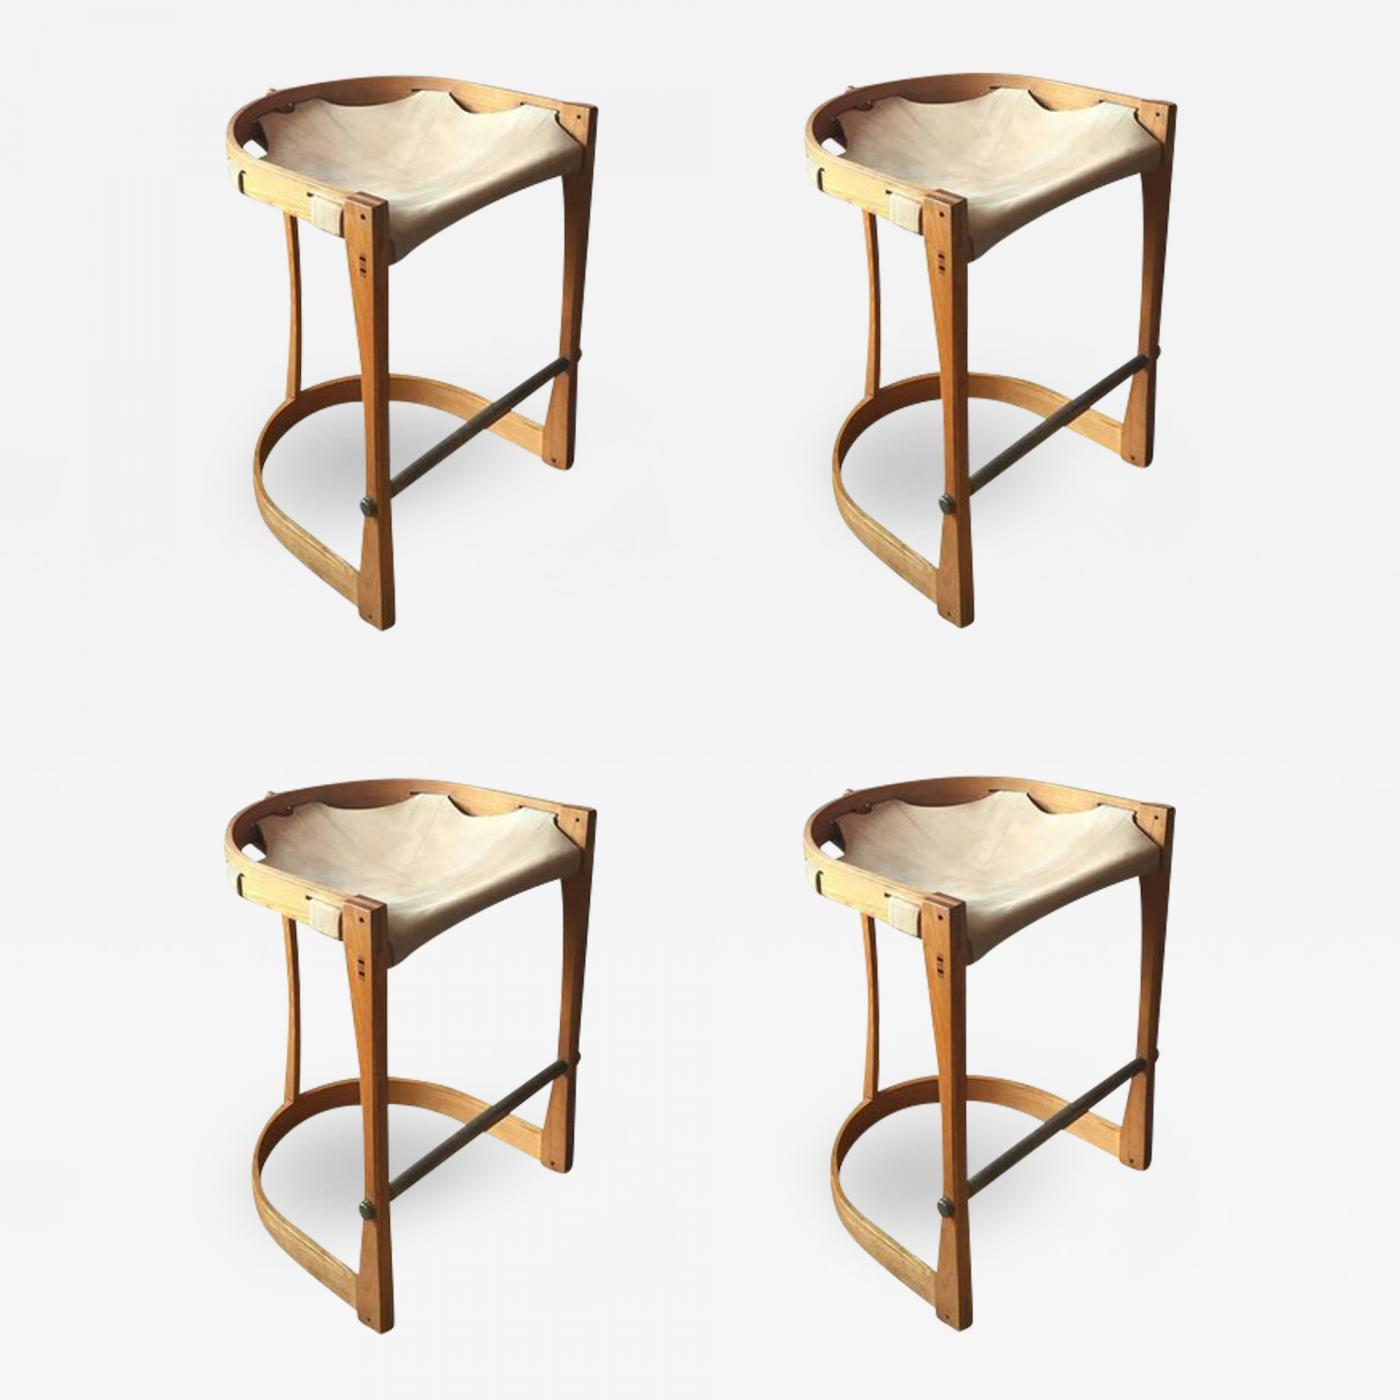 Groovy Set Of Four American Studio Craft Counter Stools Beatyapartments Chair Design Images Beatyapartmentscom